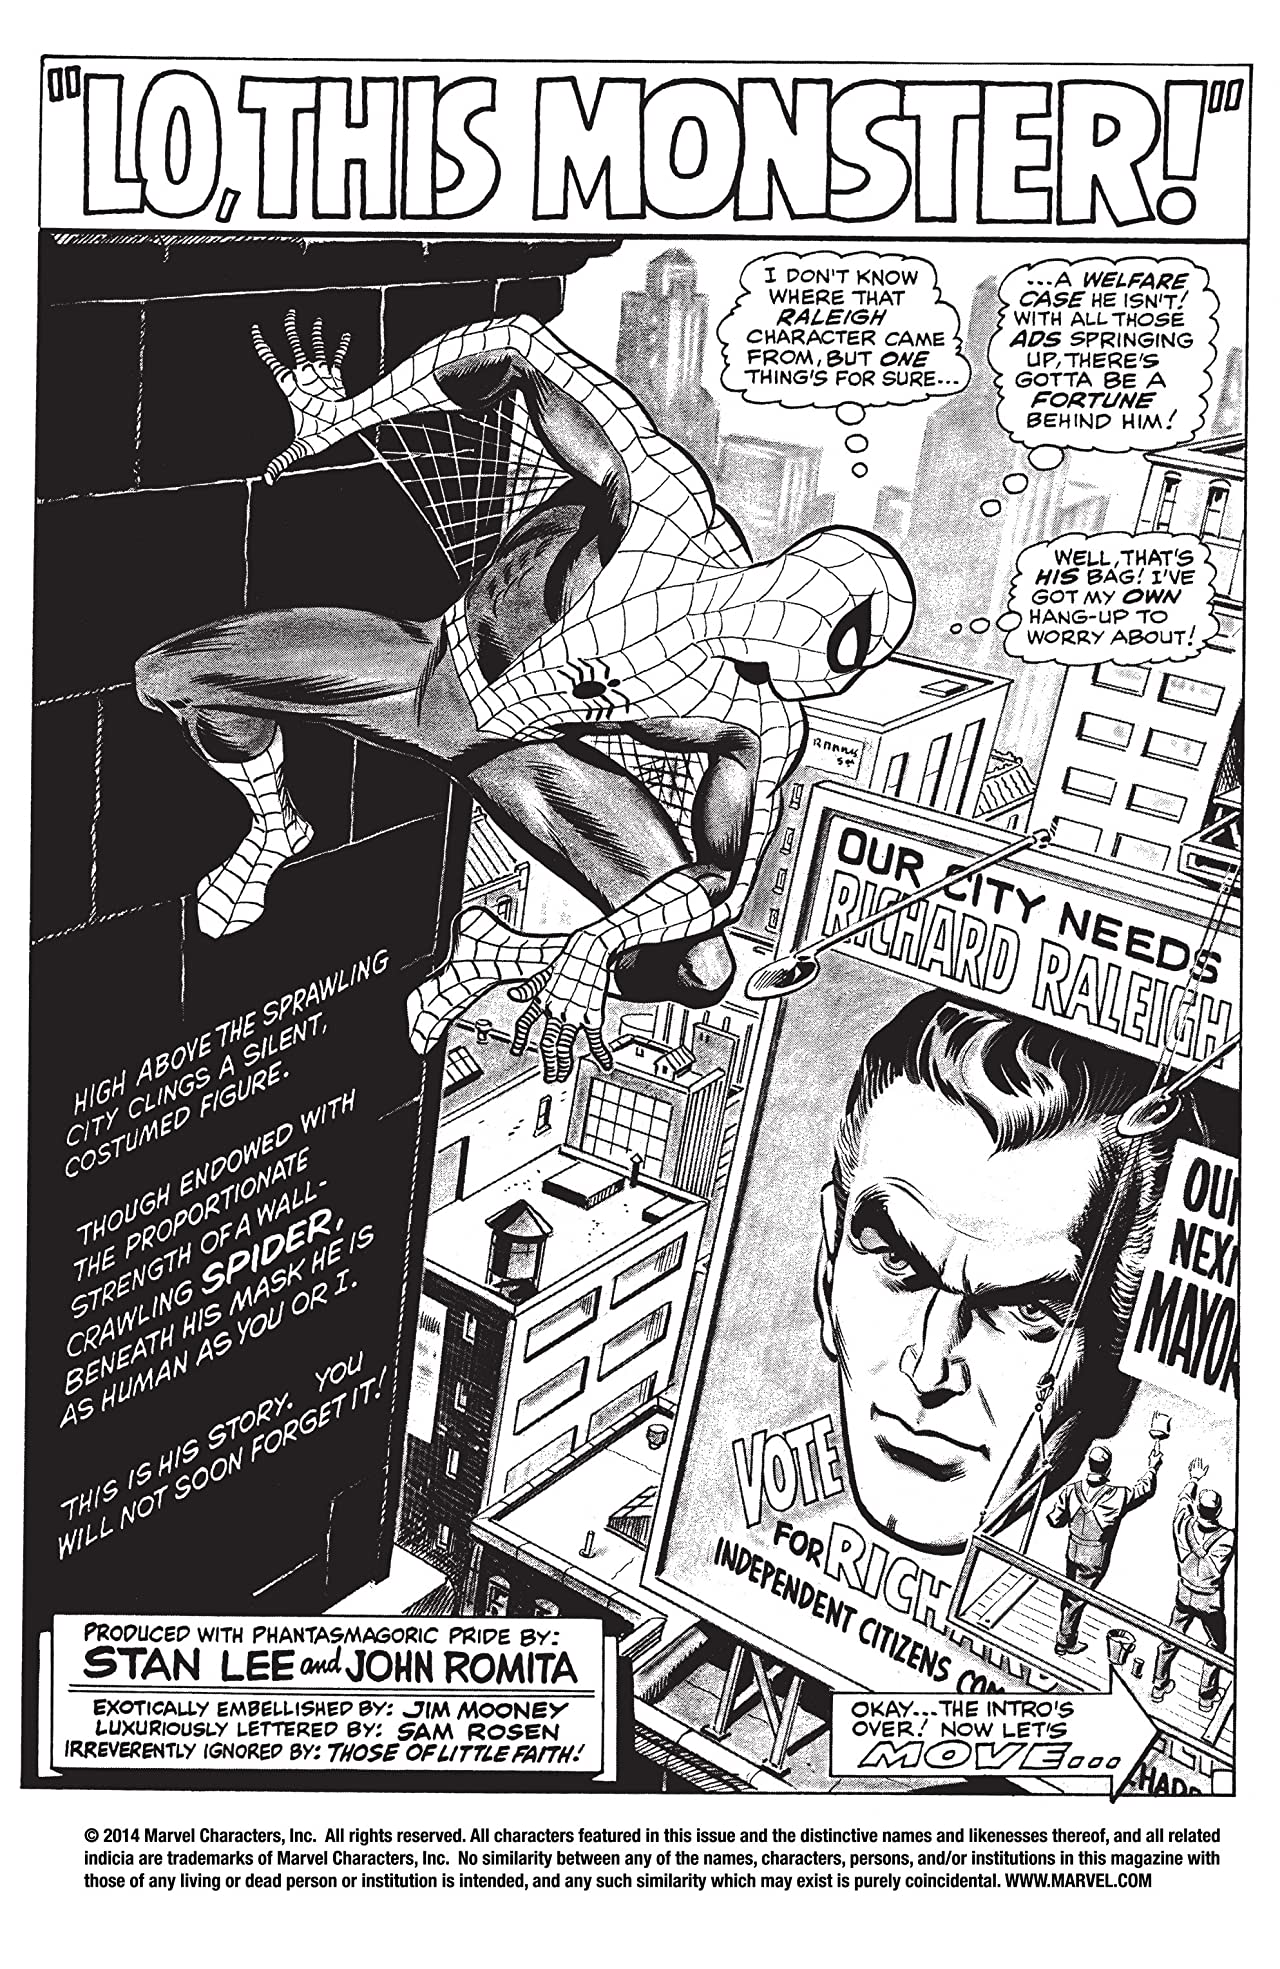 Amazing Spider-Man Masterworks Vol. 7